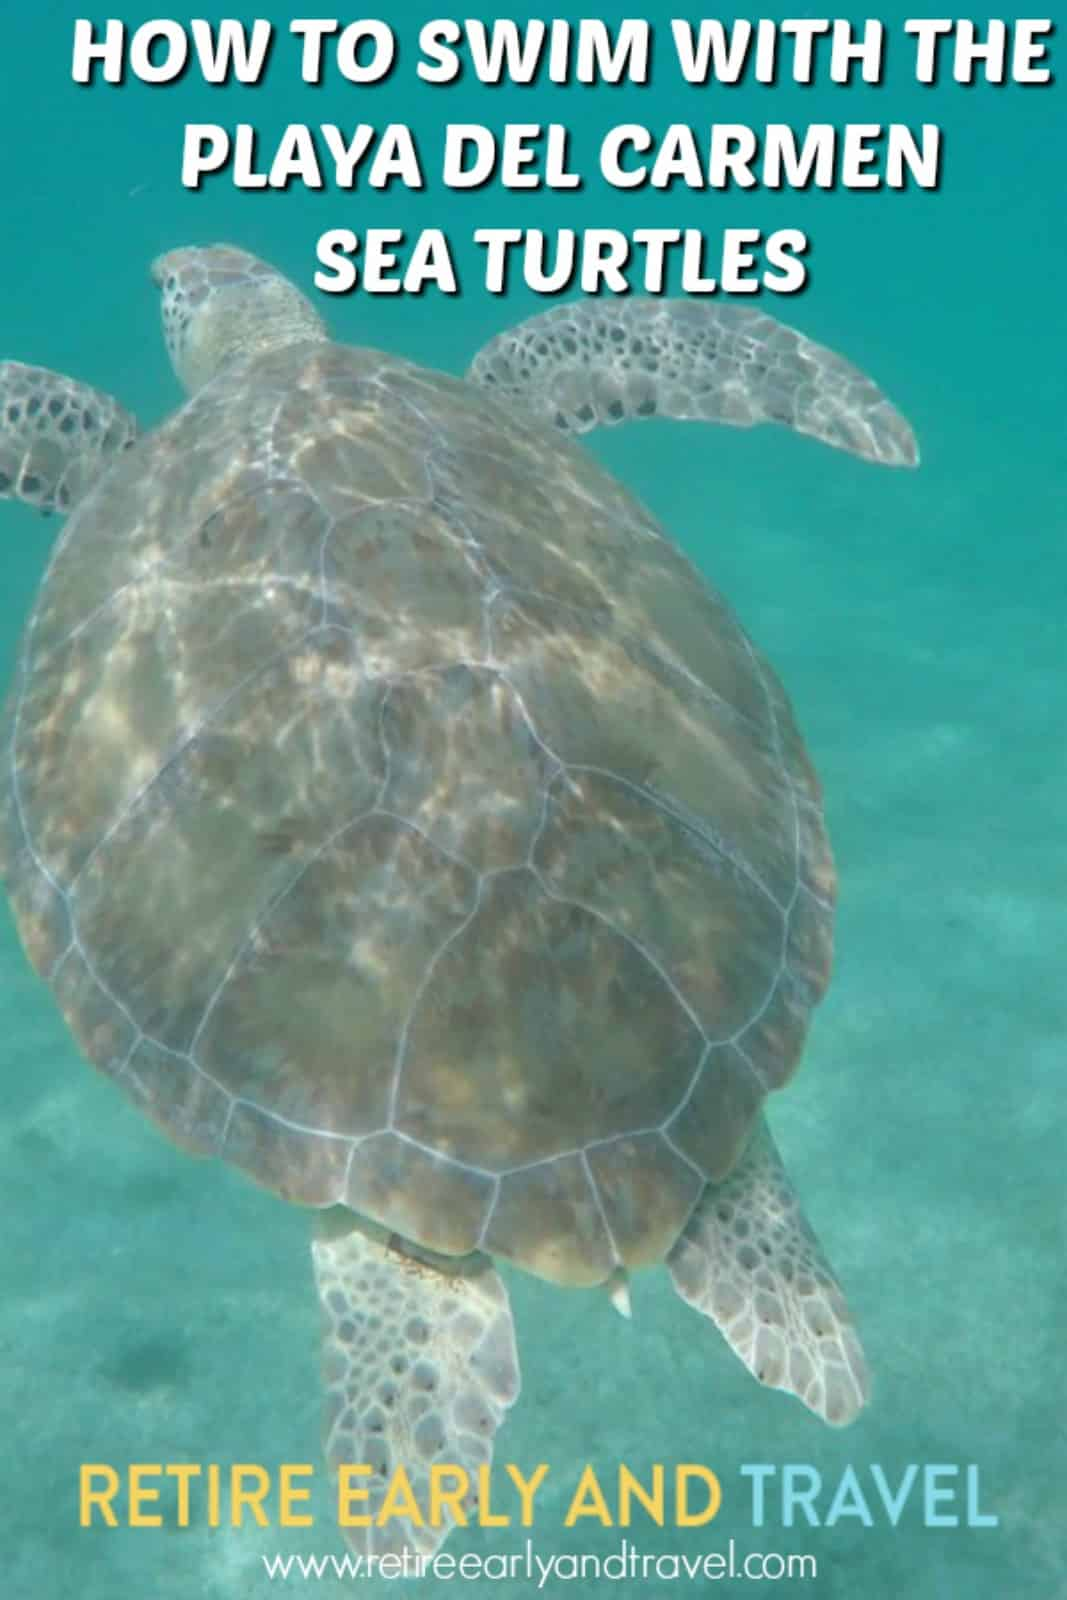 Playa Del Carmen Sea Turtles – How to Swim With